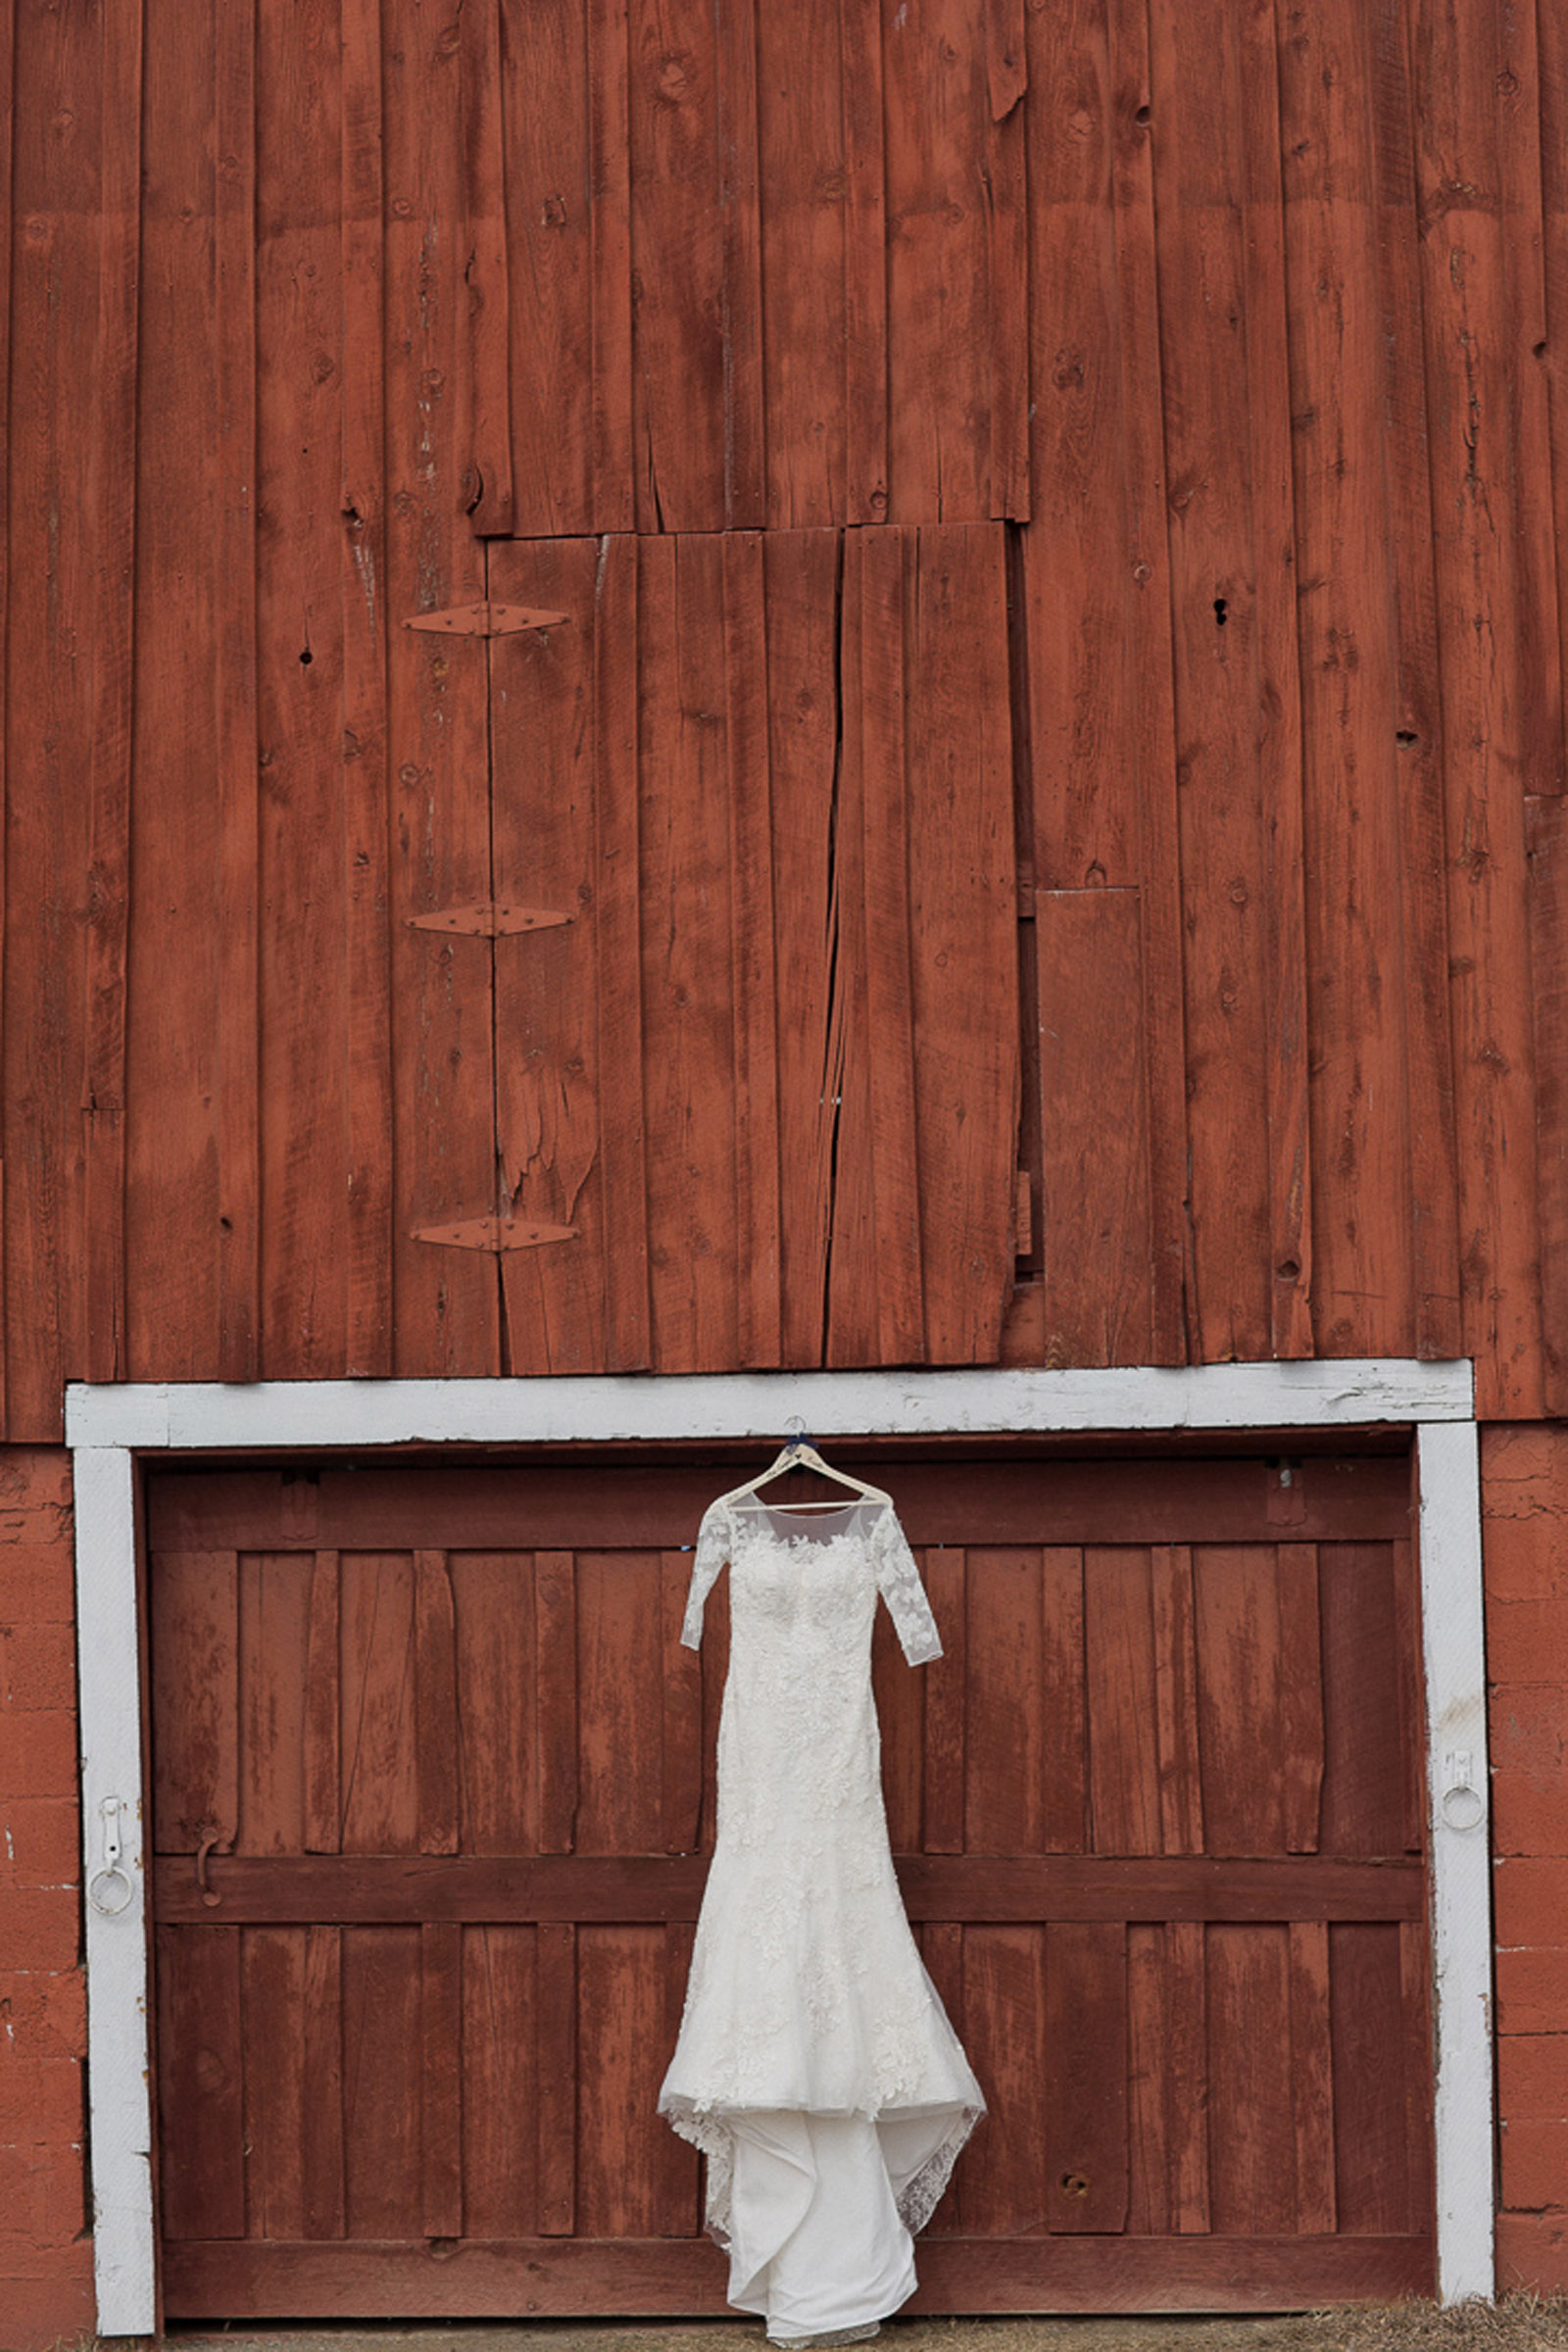 030-wedding-dress-in-red-barn-hanging-for-style-in-pagosa-springs-colorado-for-mirabal-photography